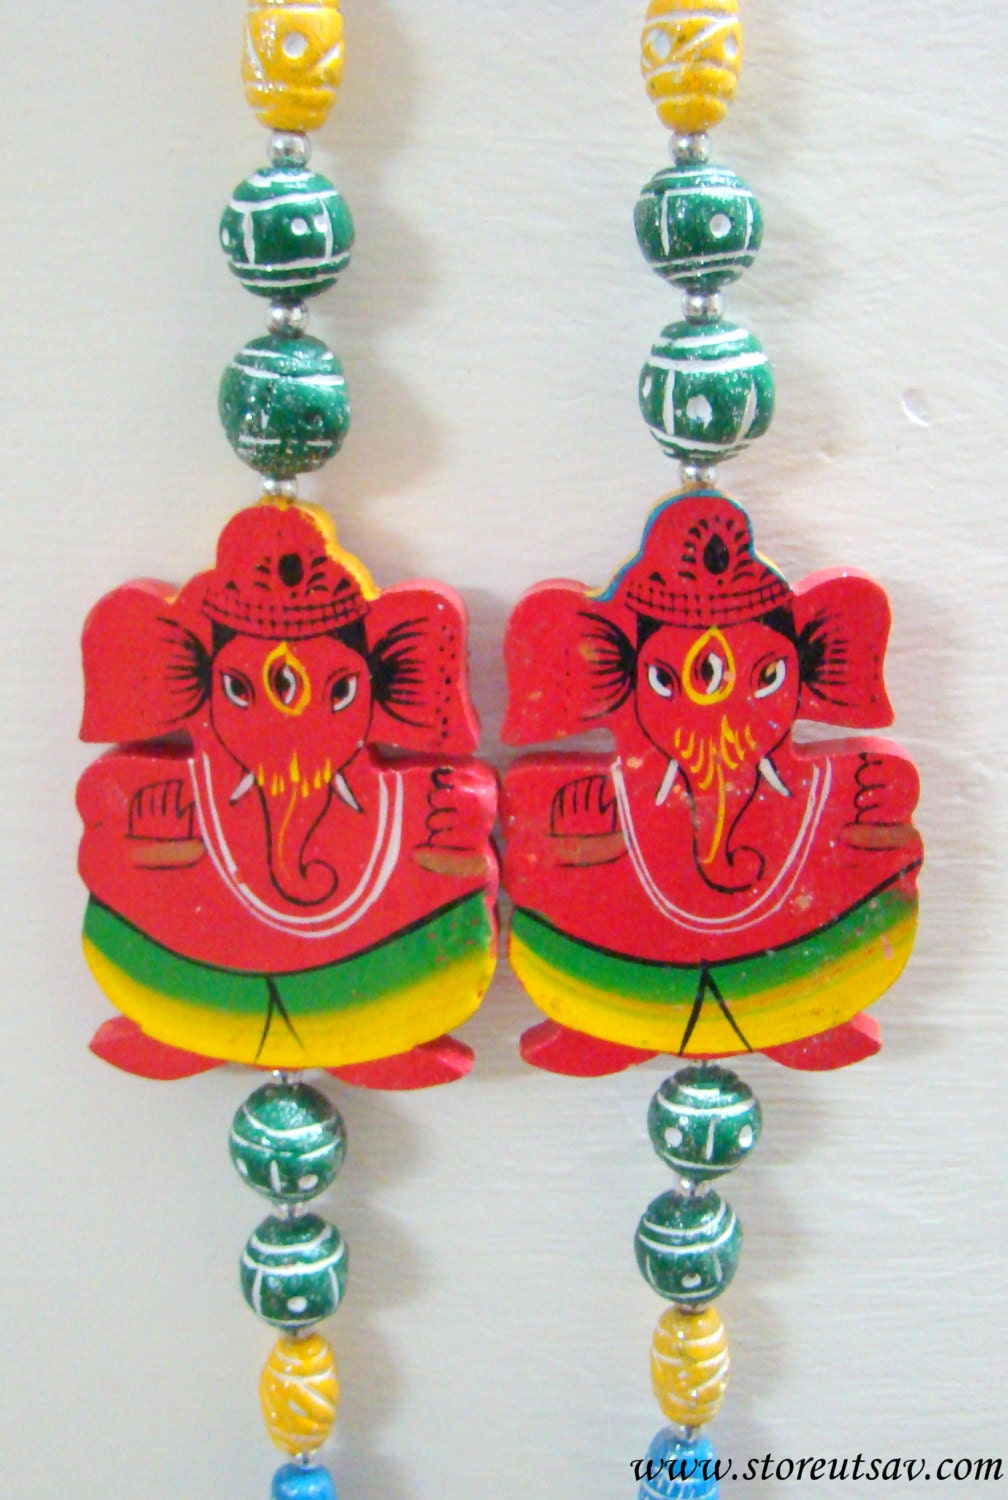 Wall hanging home decor indian handicraft good luck by for Good luck home decor